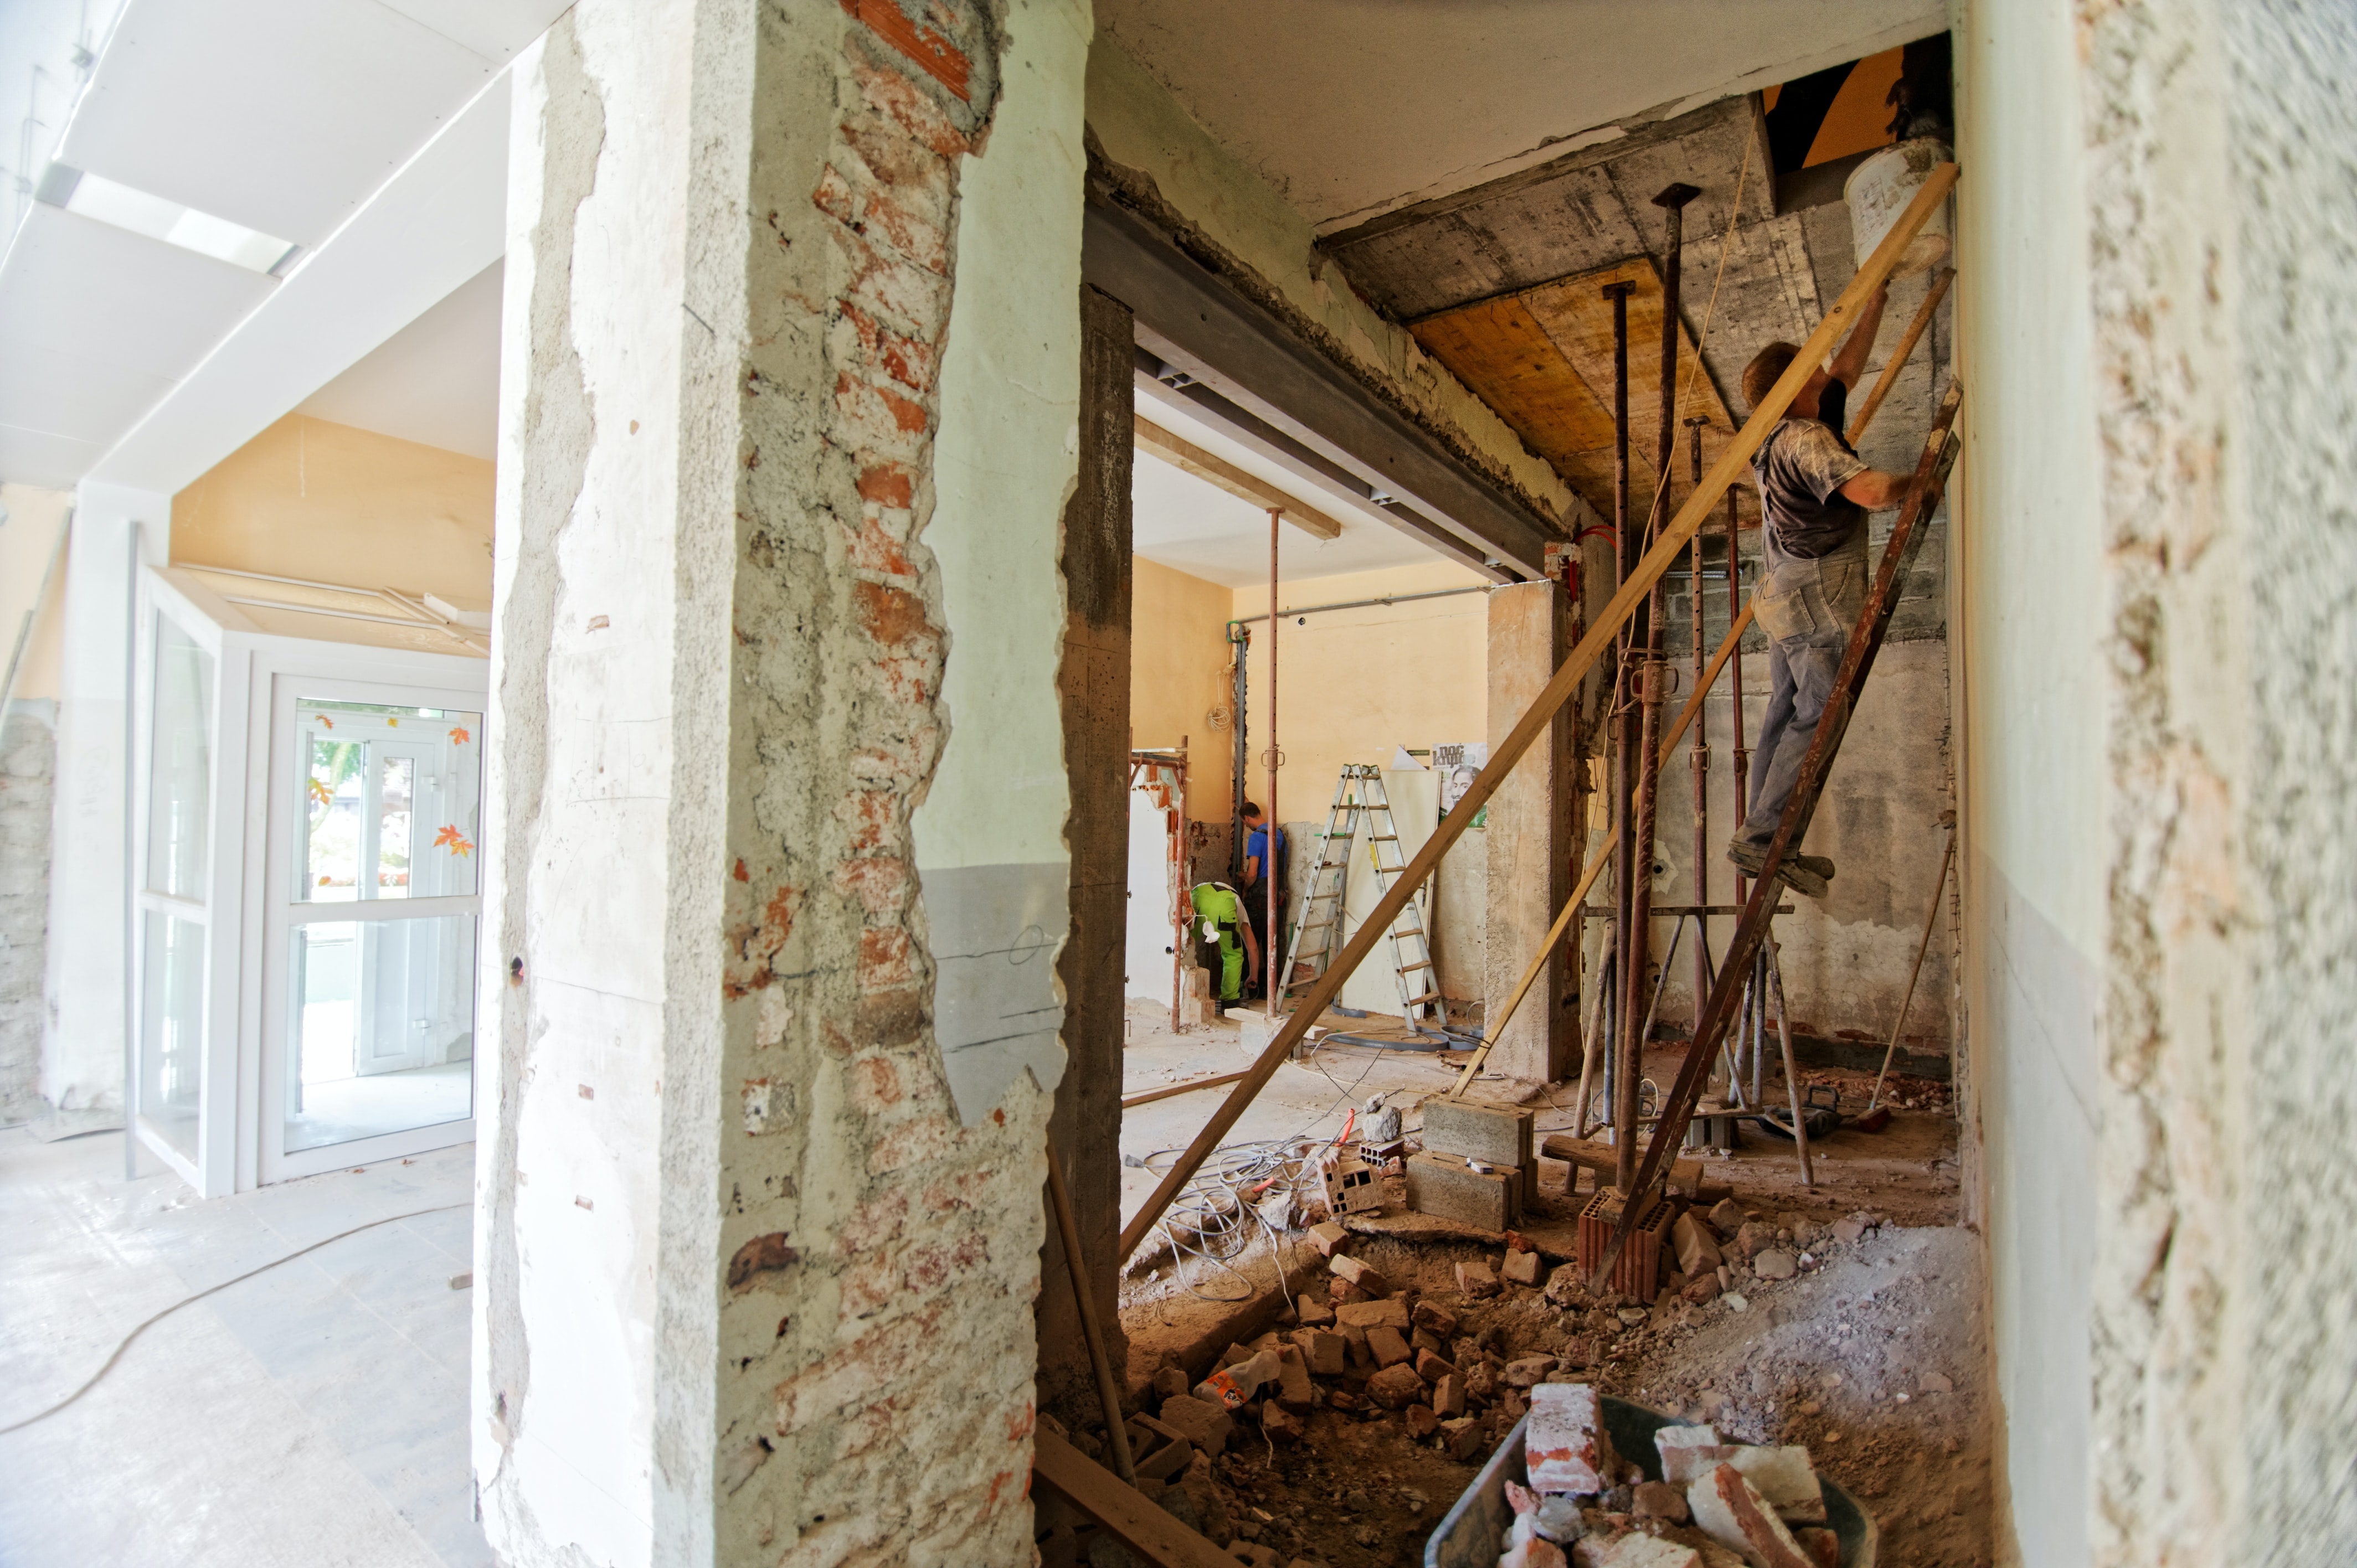 image of total home renovation project via Unsplash